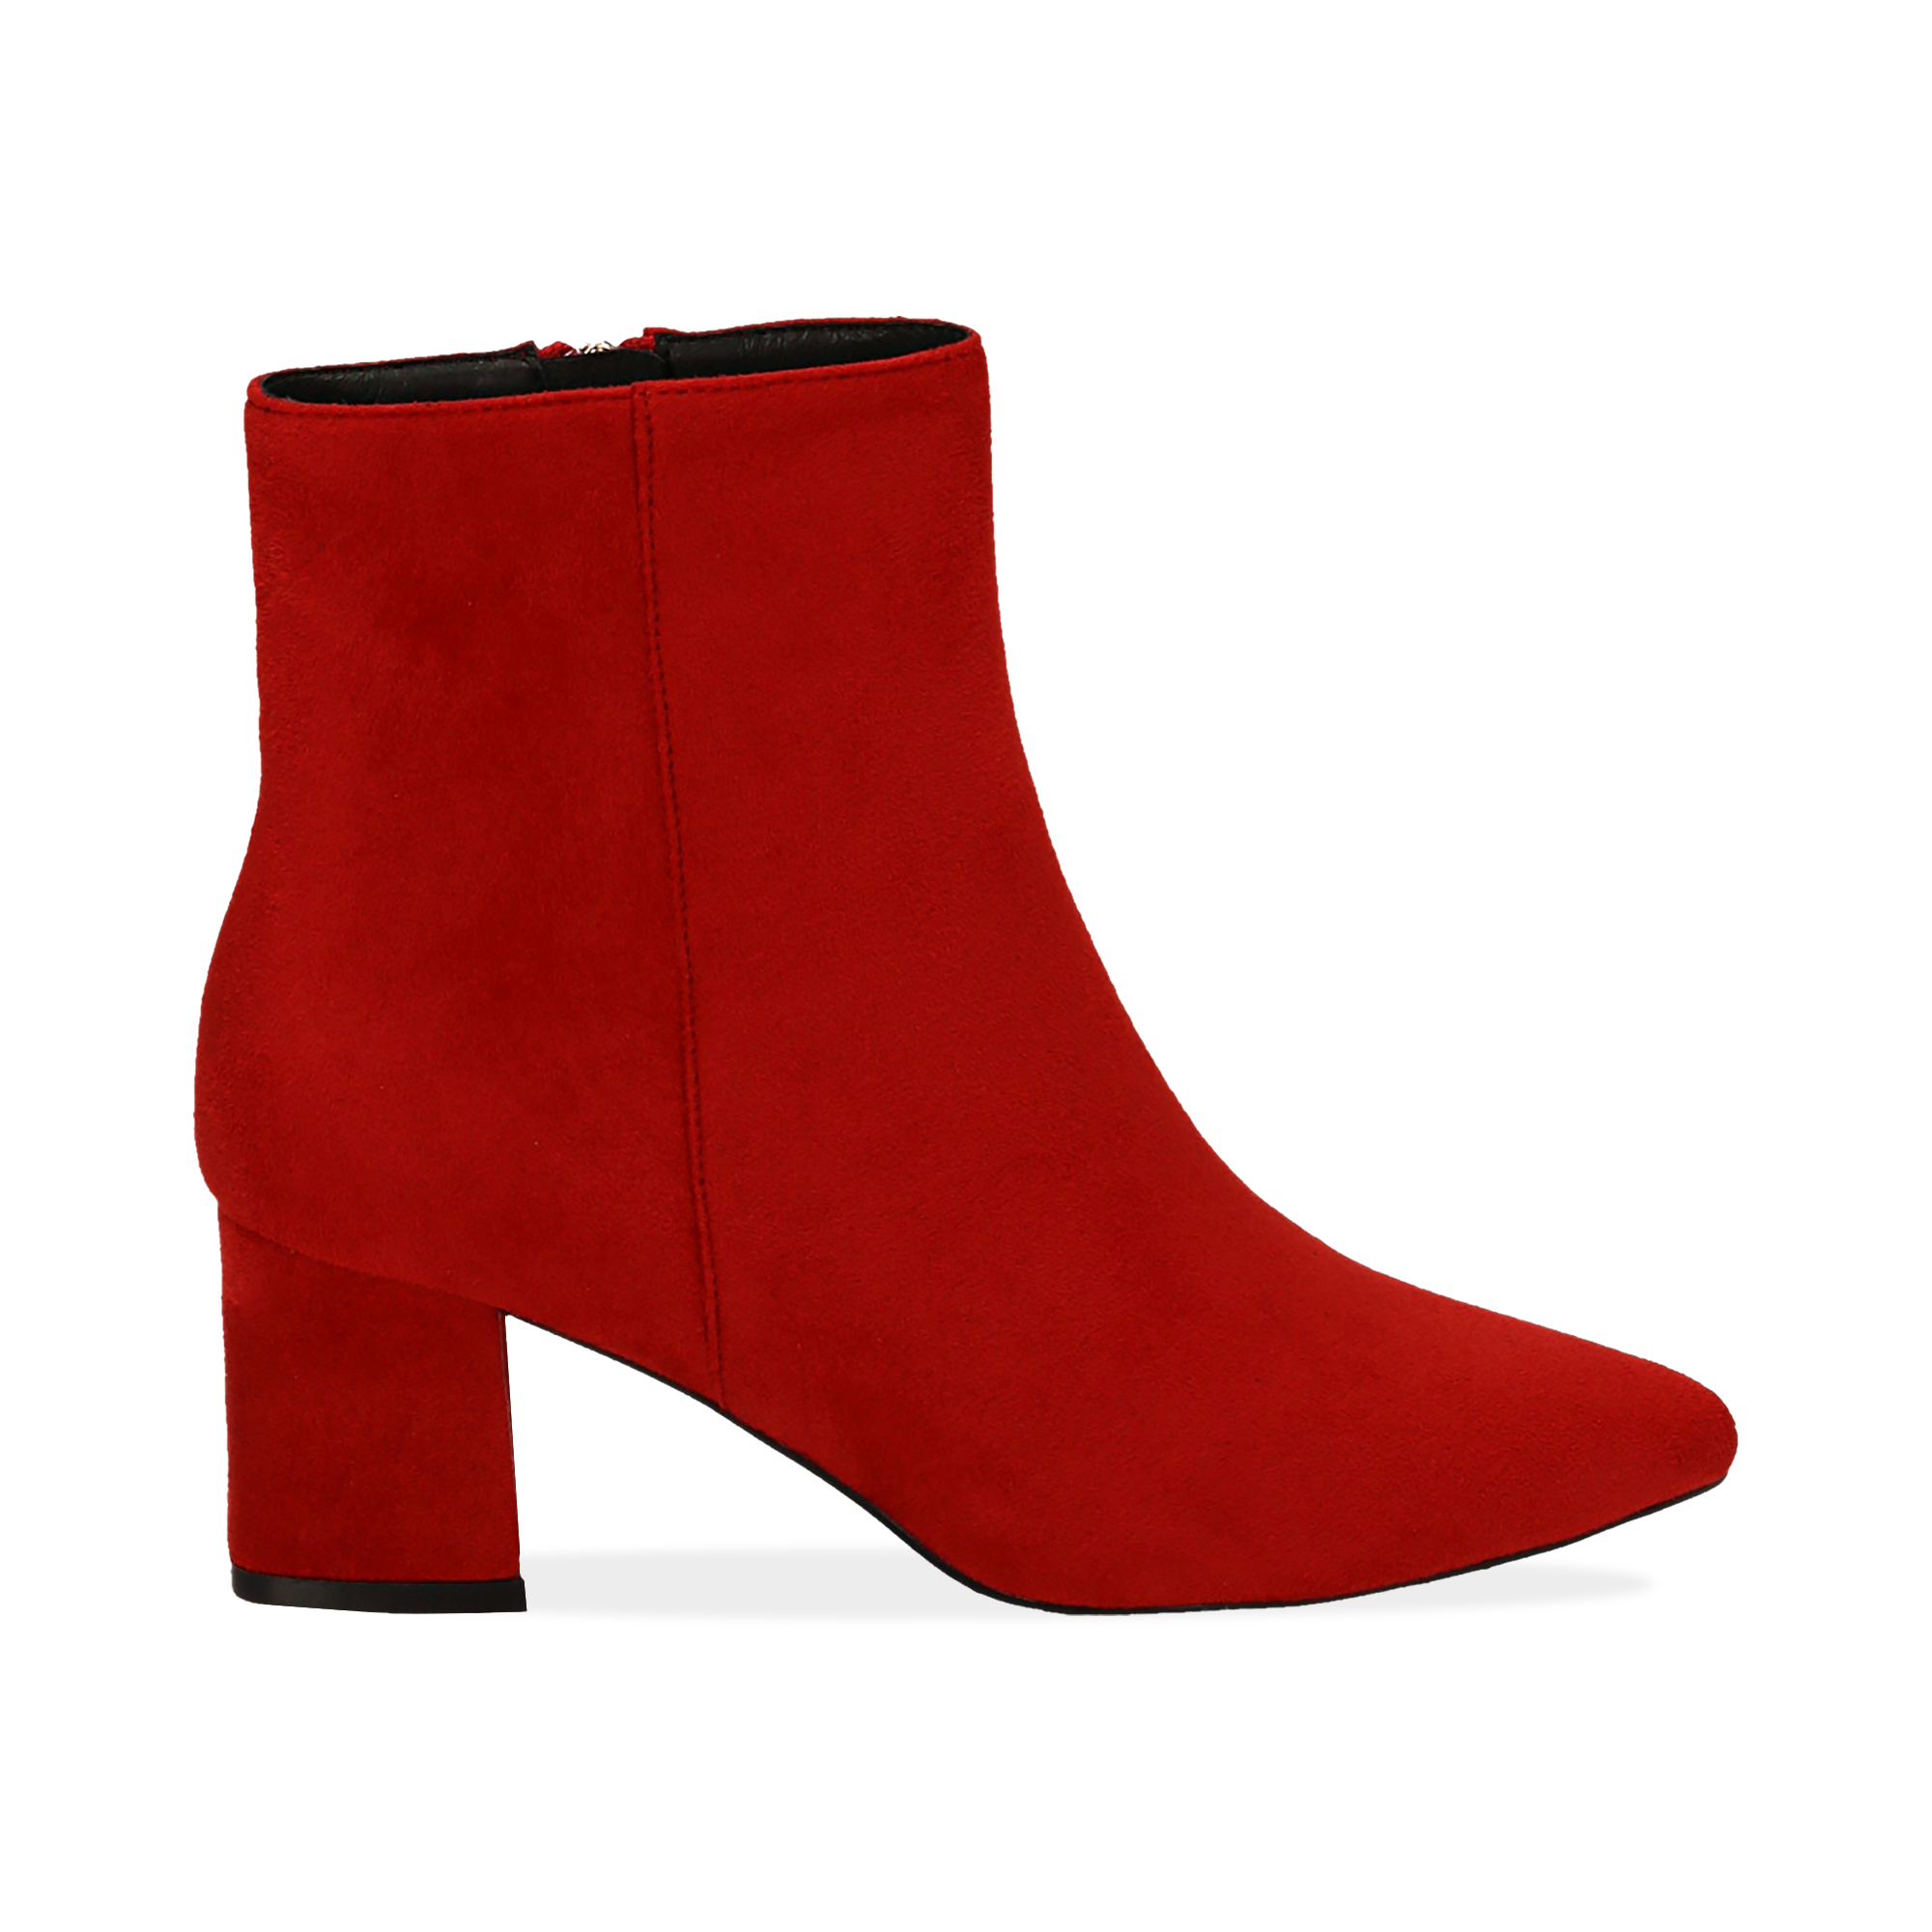 Ankle boots rossi in microfibra, tacco 6 cm